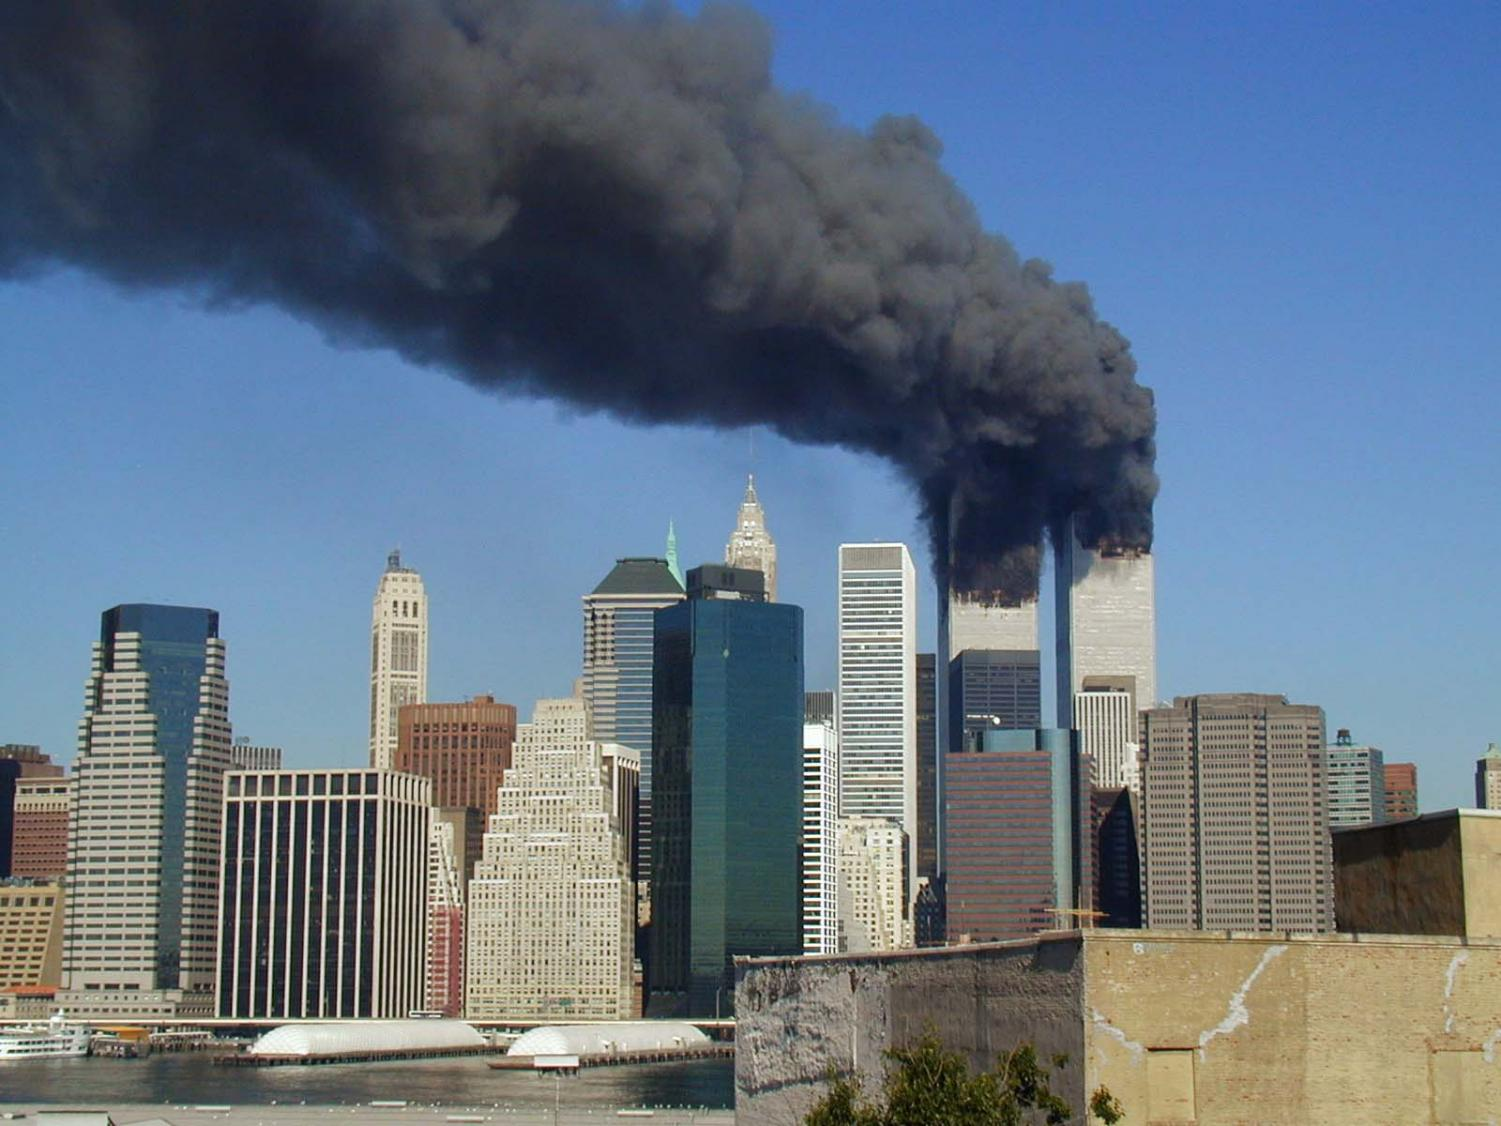 9/11: Remembering the Tragedy 18 Years Later